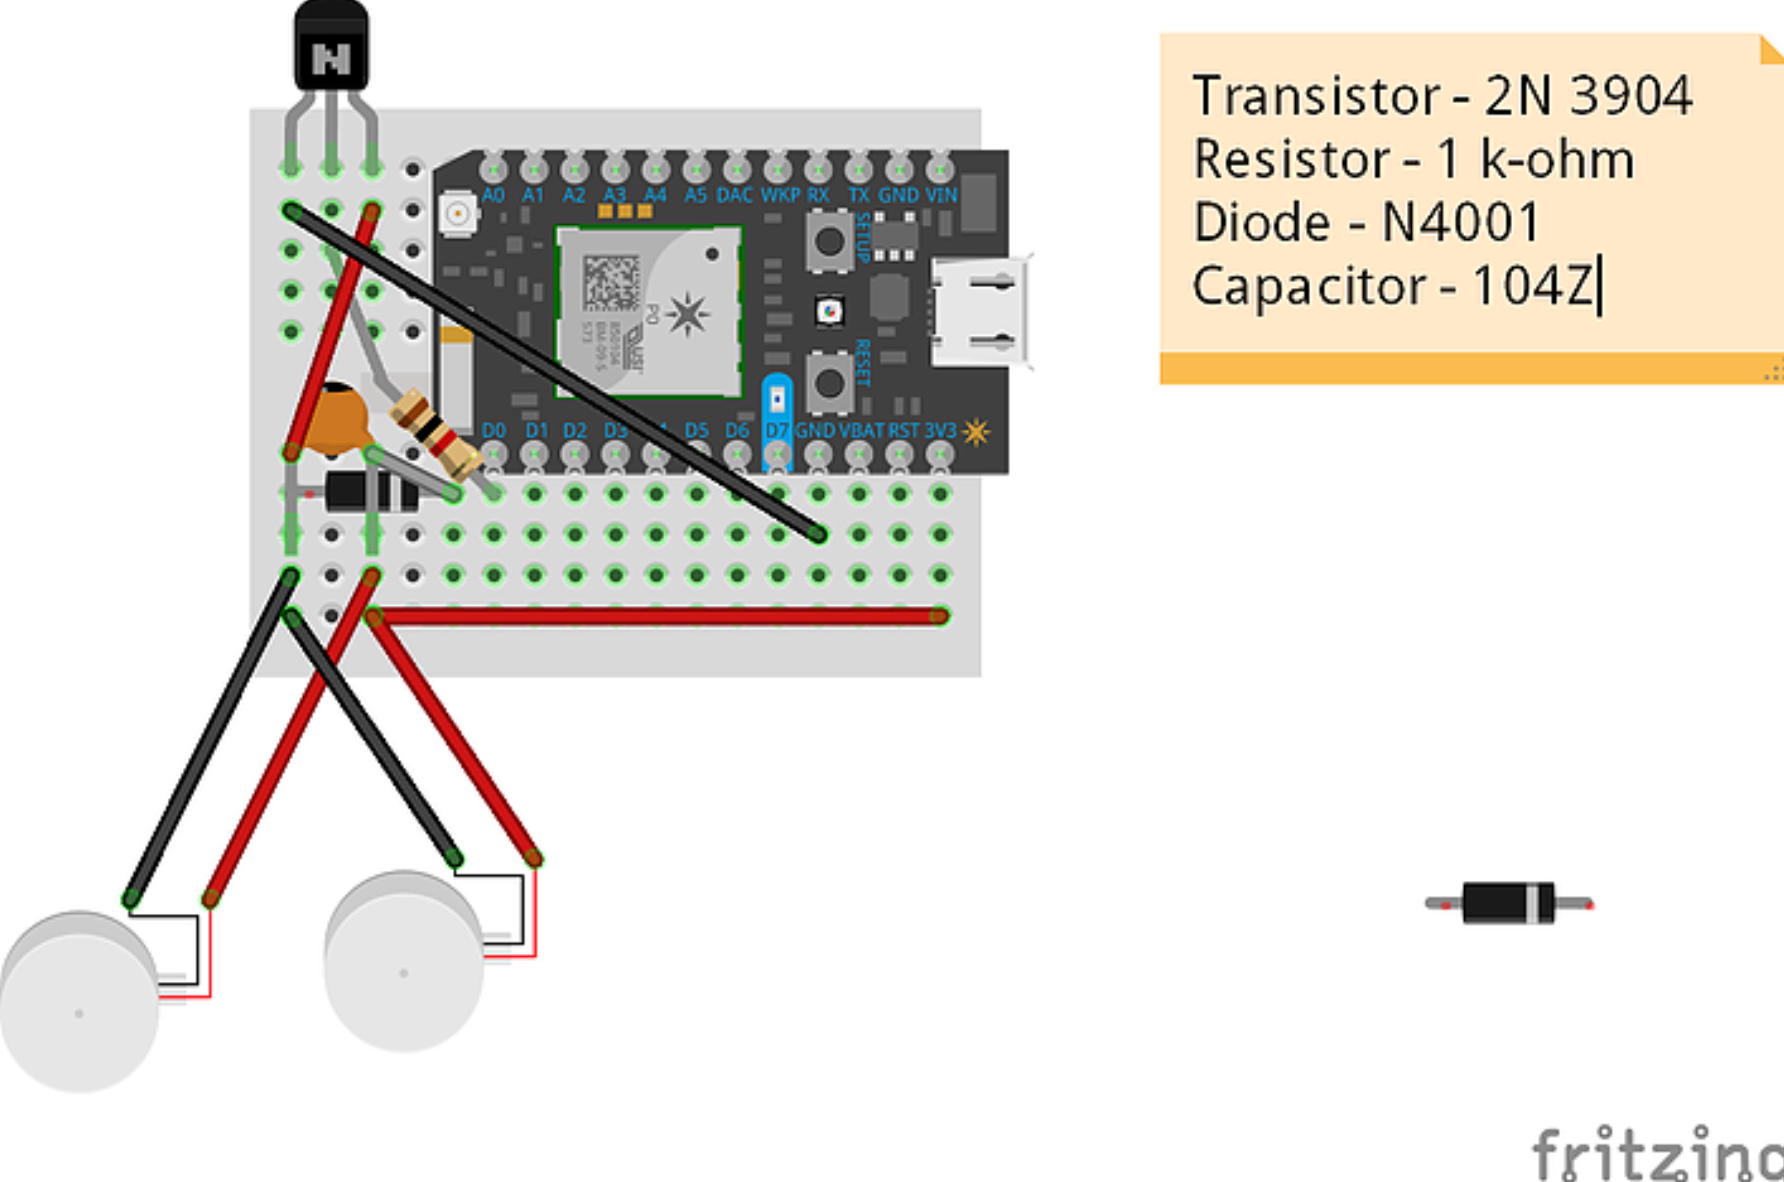 components include per hand: particle photon, resistor, diode, capacitor, transistor, haptic motors (three), and wiring.